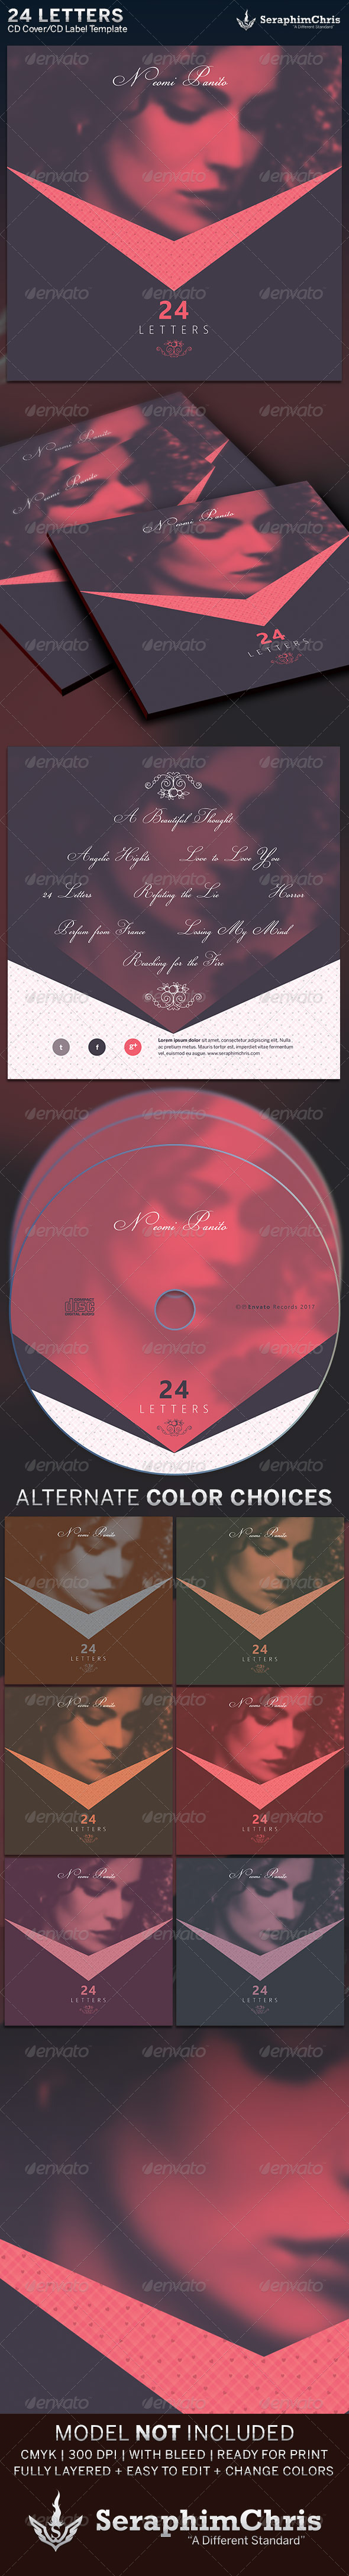 GraphicRiver 24 Letters CD Cover Artwork Template 6392085